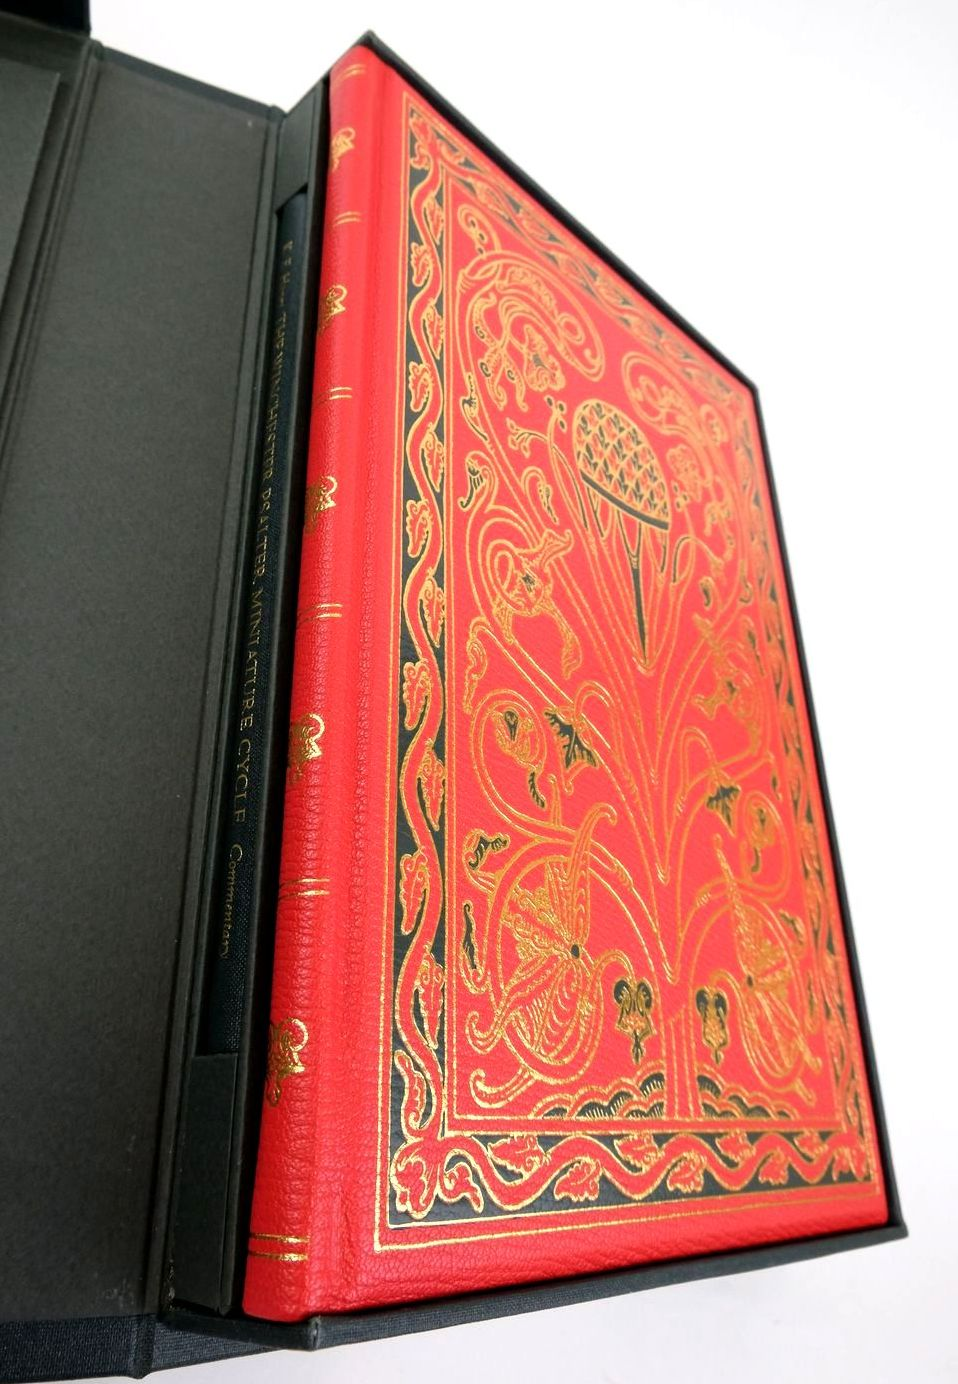 Photo of THE WINCHESTER PSALTER MINIATURE CYCLE written by Haney, Kristine E. published by Folio Society (STOCK CODE: 1822160)  for sale by Stella & Rose's Books